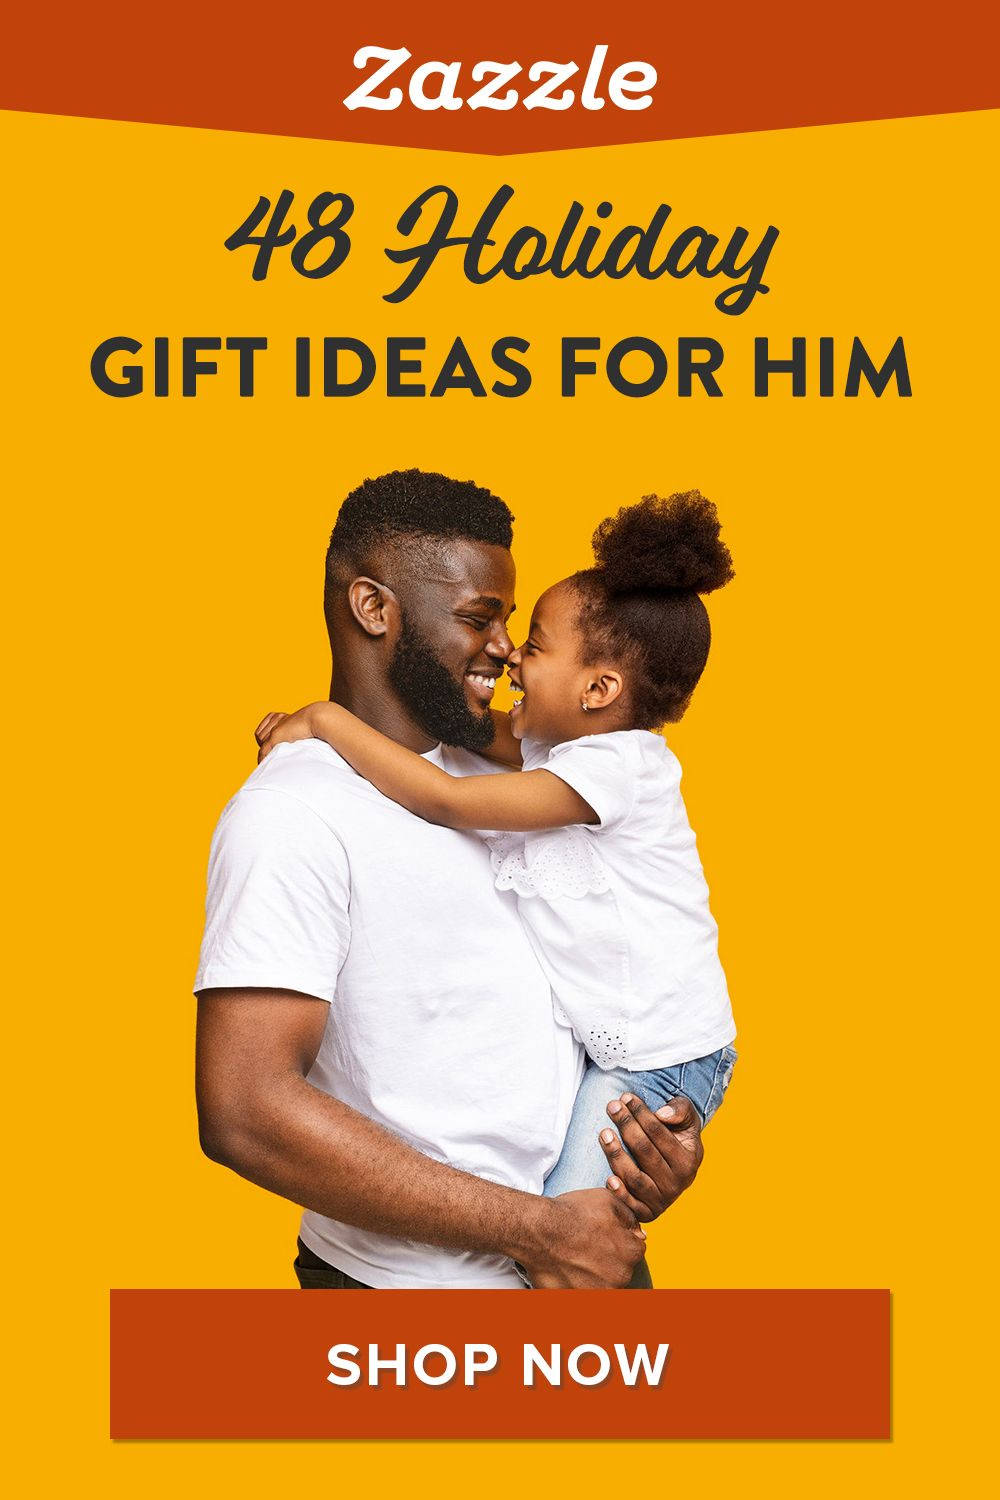 Looking on the perfect gift for dad, grandpa, or brother? Check out our gift guide that features 48 ideas for him. Shop Zazzle for all things holiday including holiday cards, decor, apparel and more.